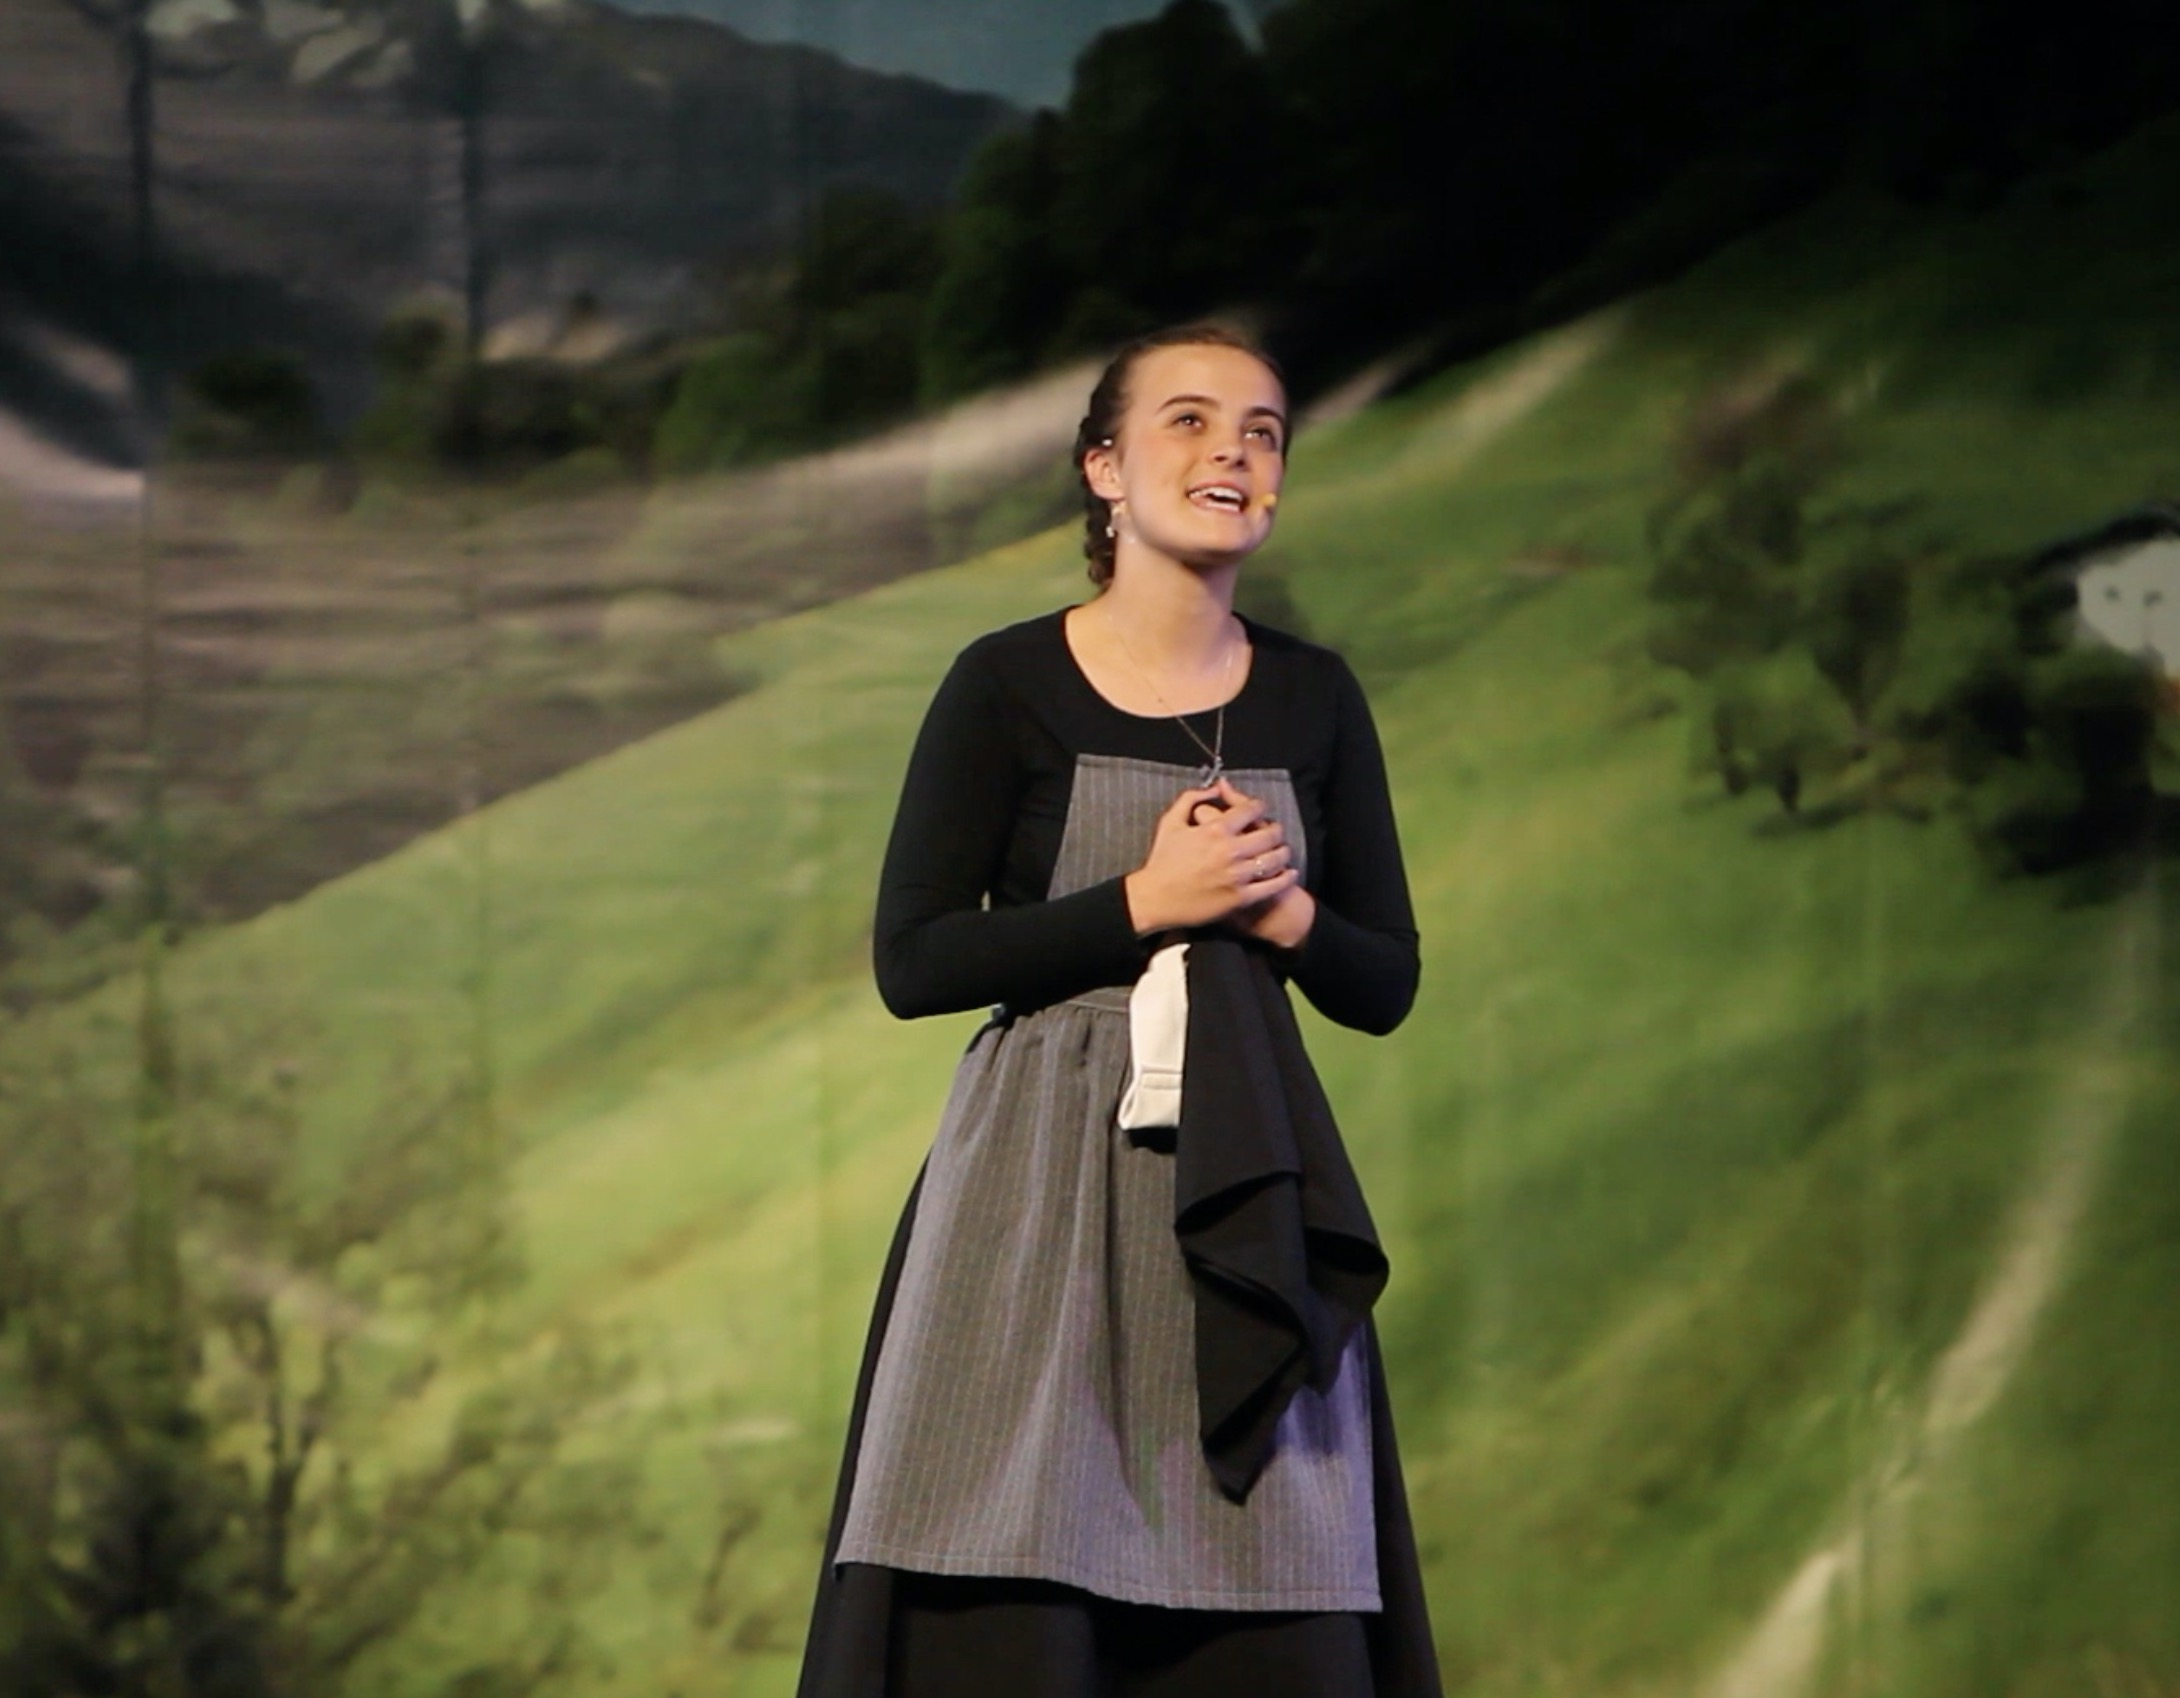 The Cambridge School Sound of Music